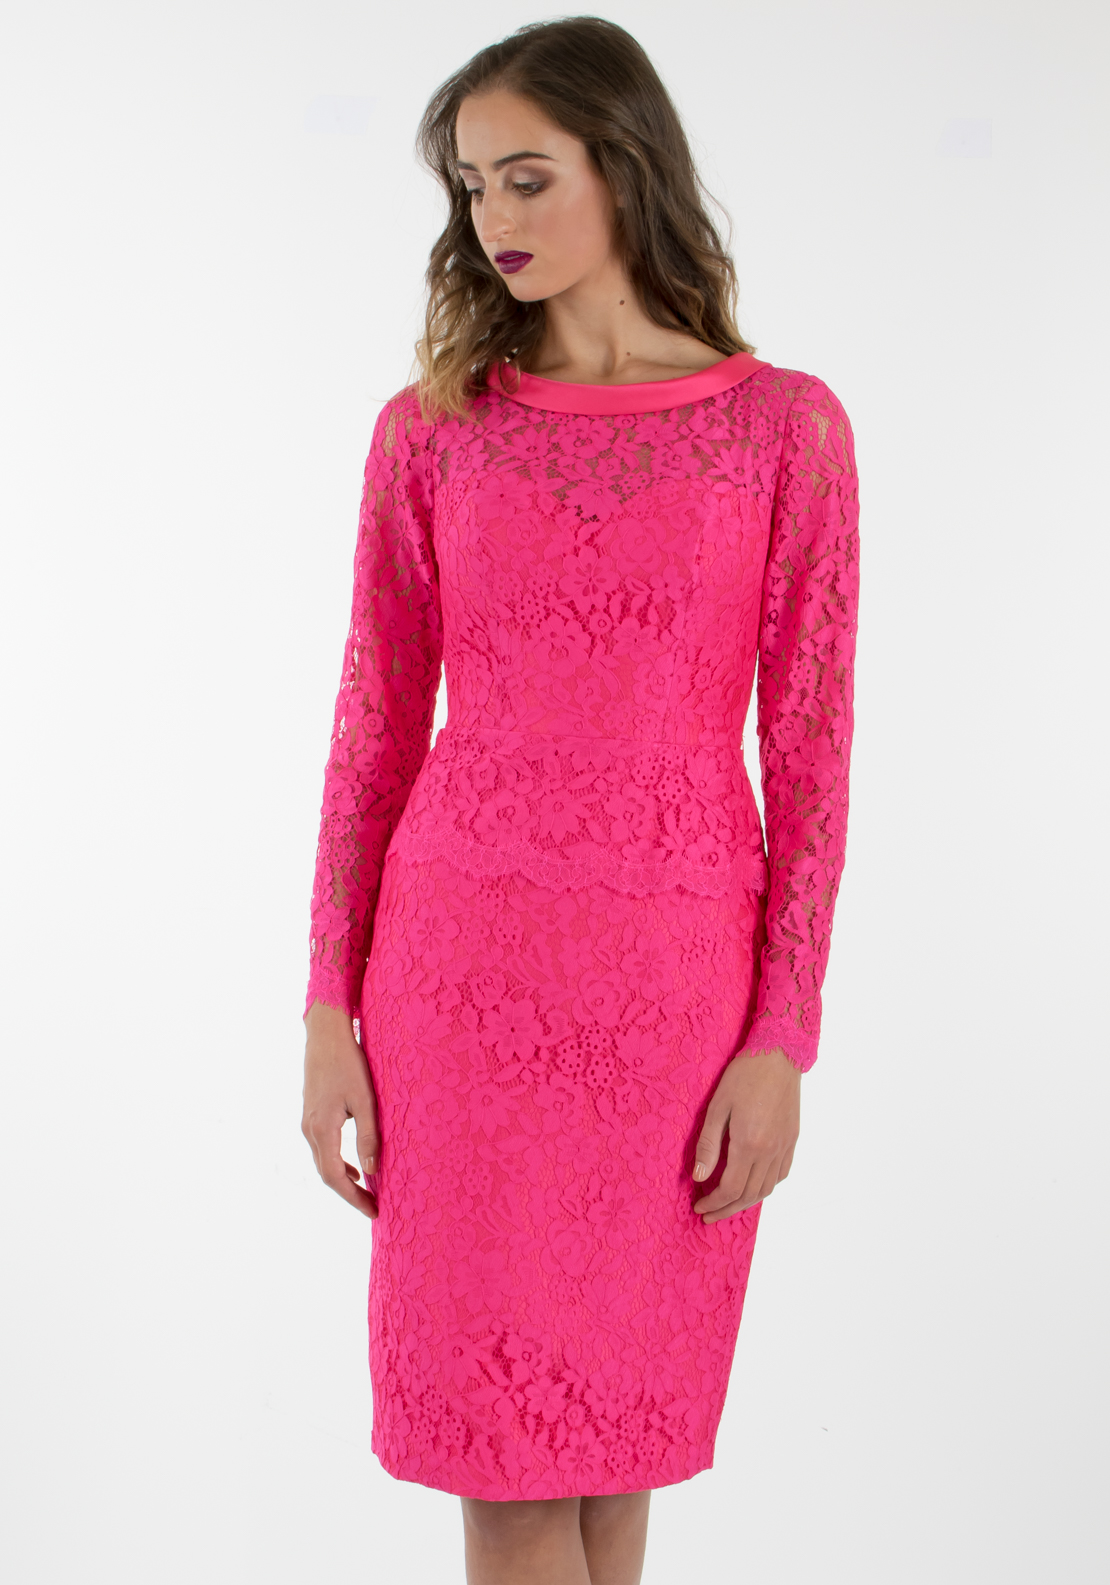 Pronovias Cocktail Capel Lace Pencil Dress, Hot Pink